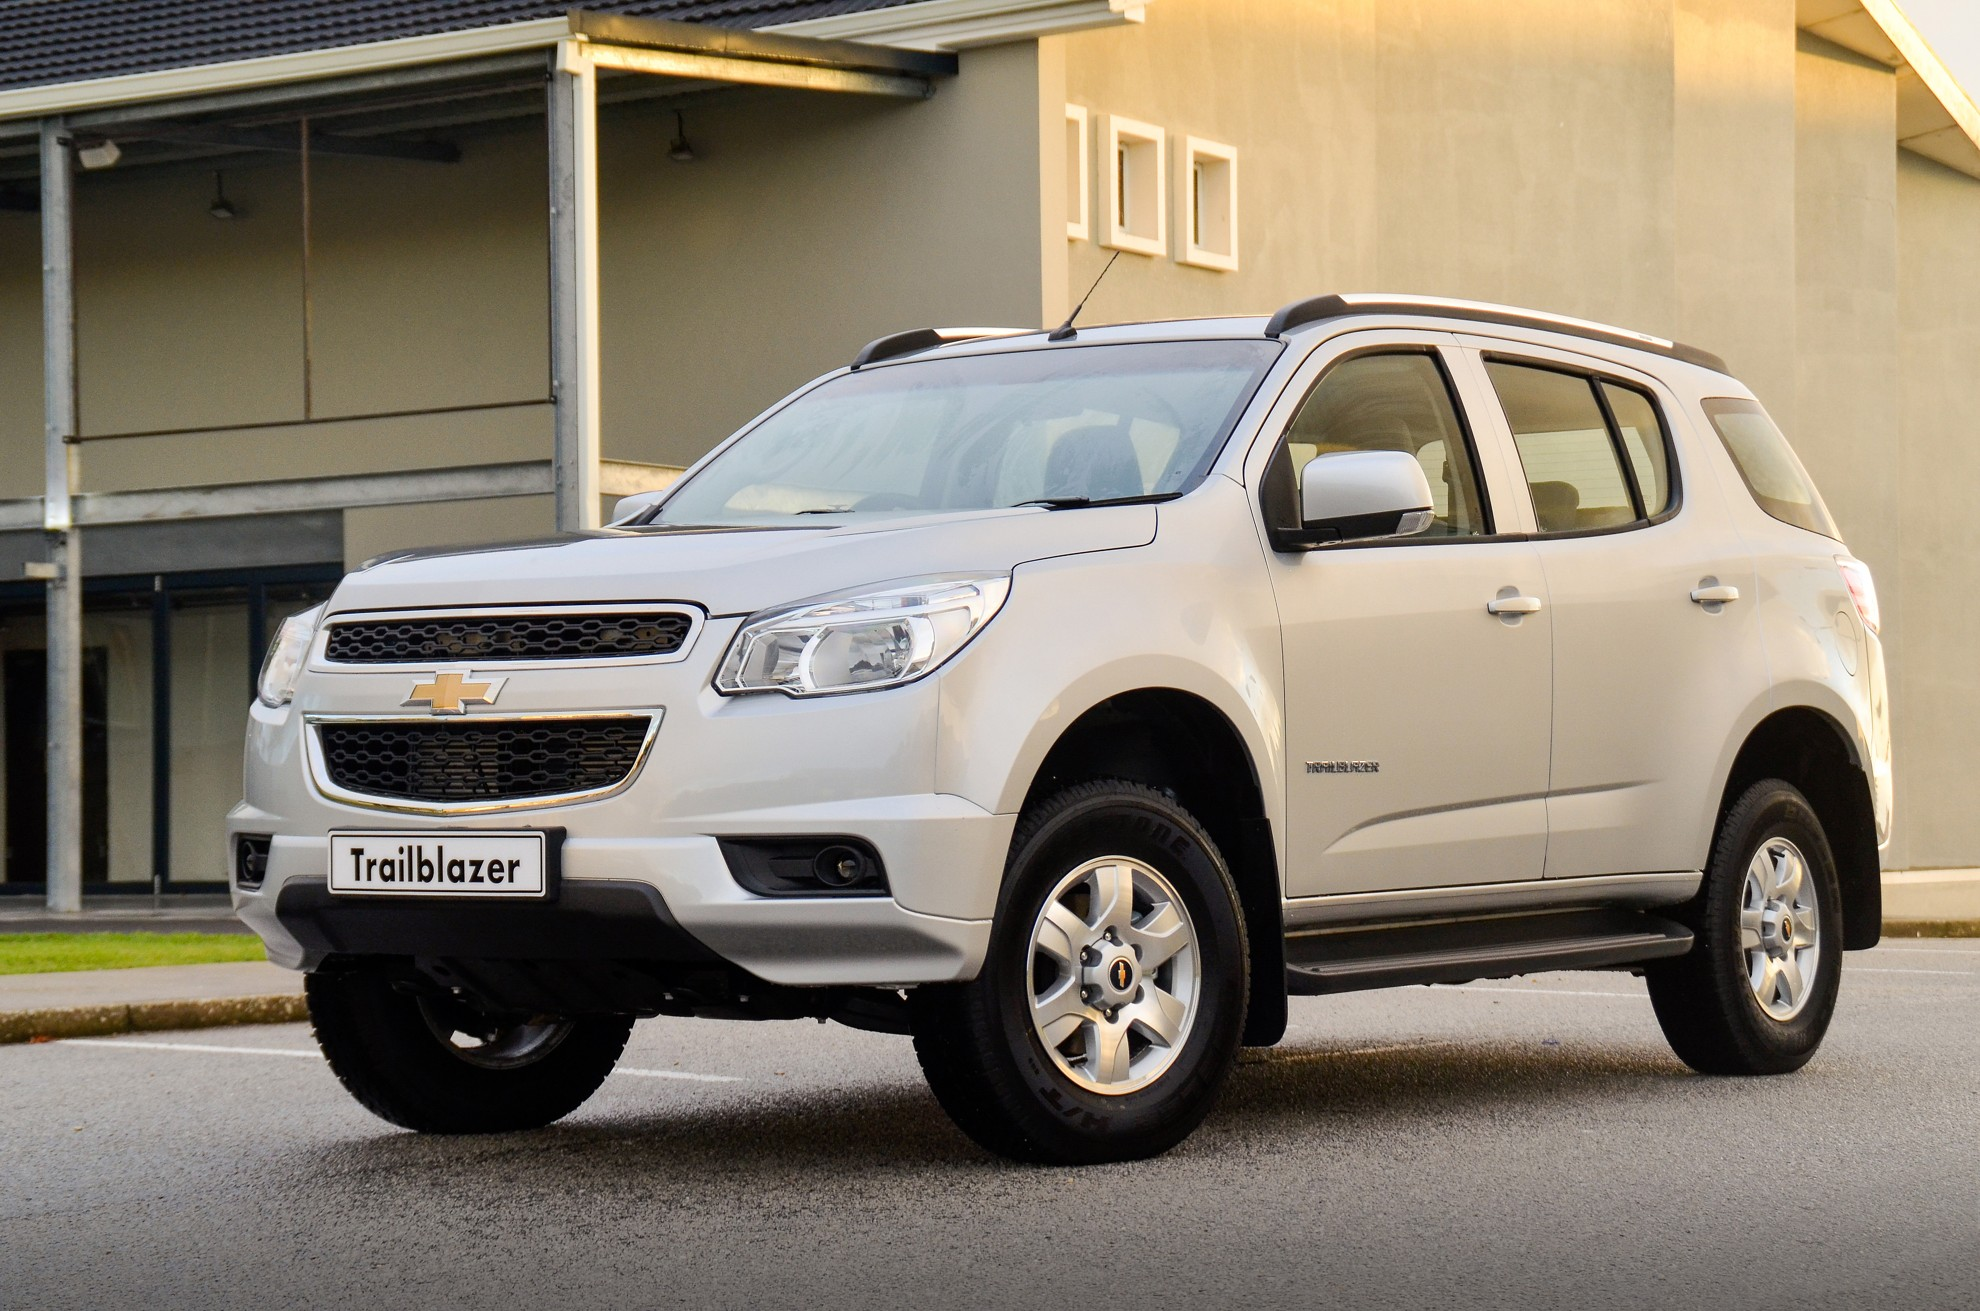 Chevy Suv Models >> Chevrolet Trailblazer South Africa upgraded for 2014